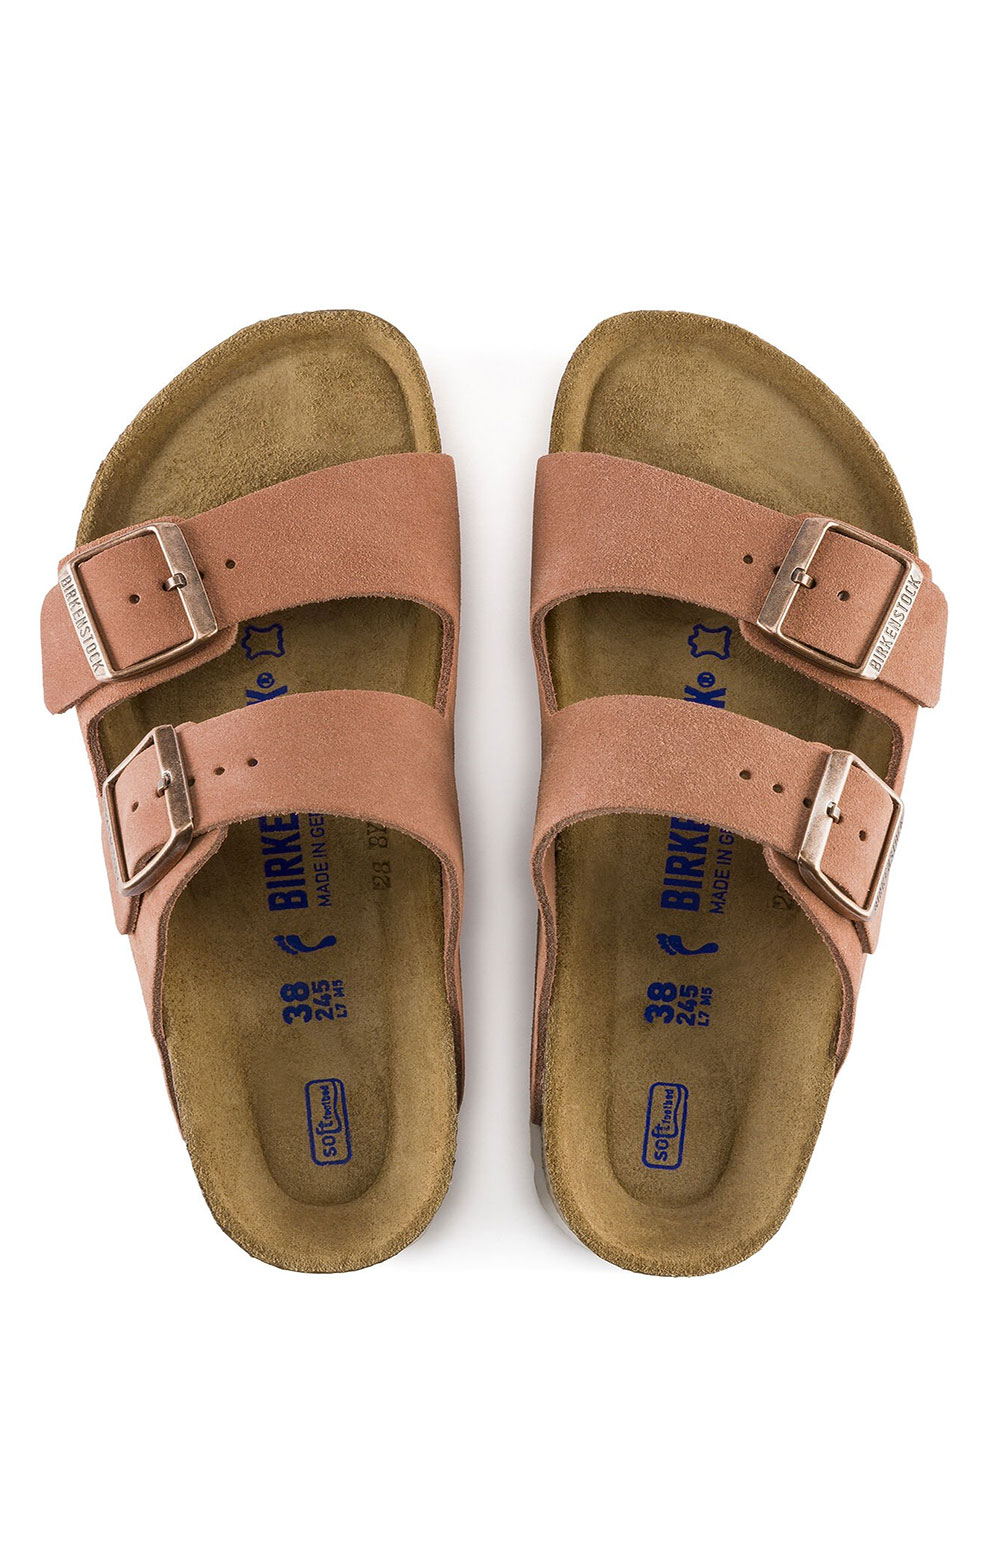 Arizona Soft Footbed Sandals - Earth Red 4